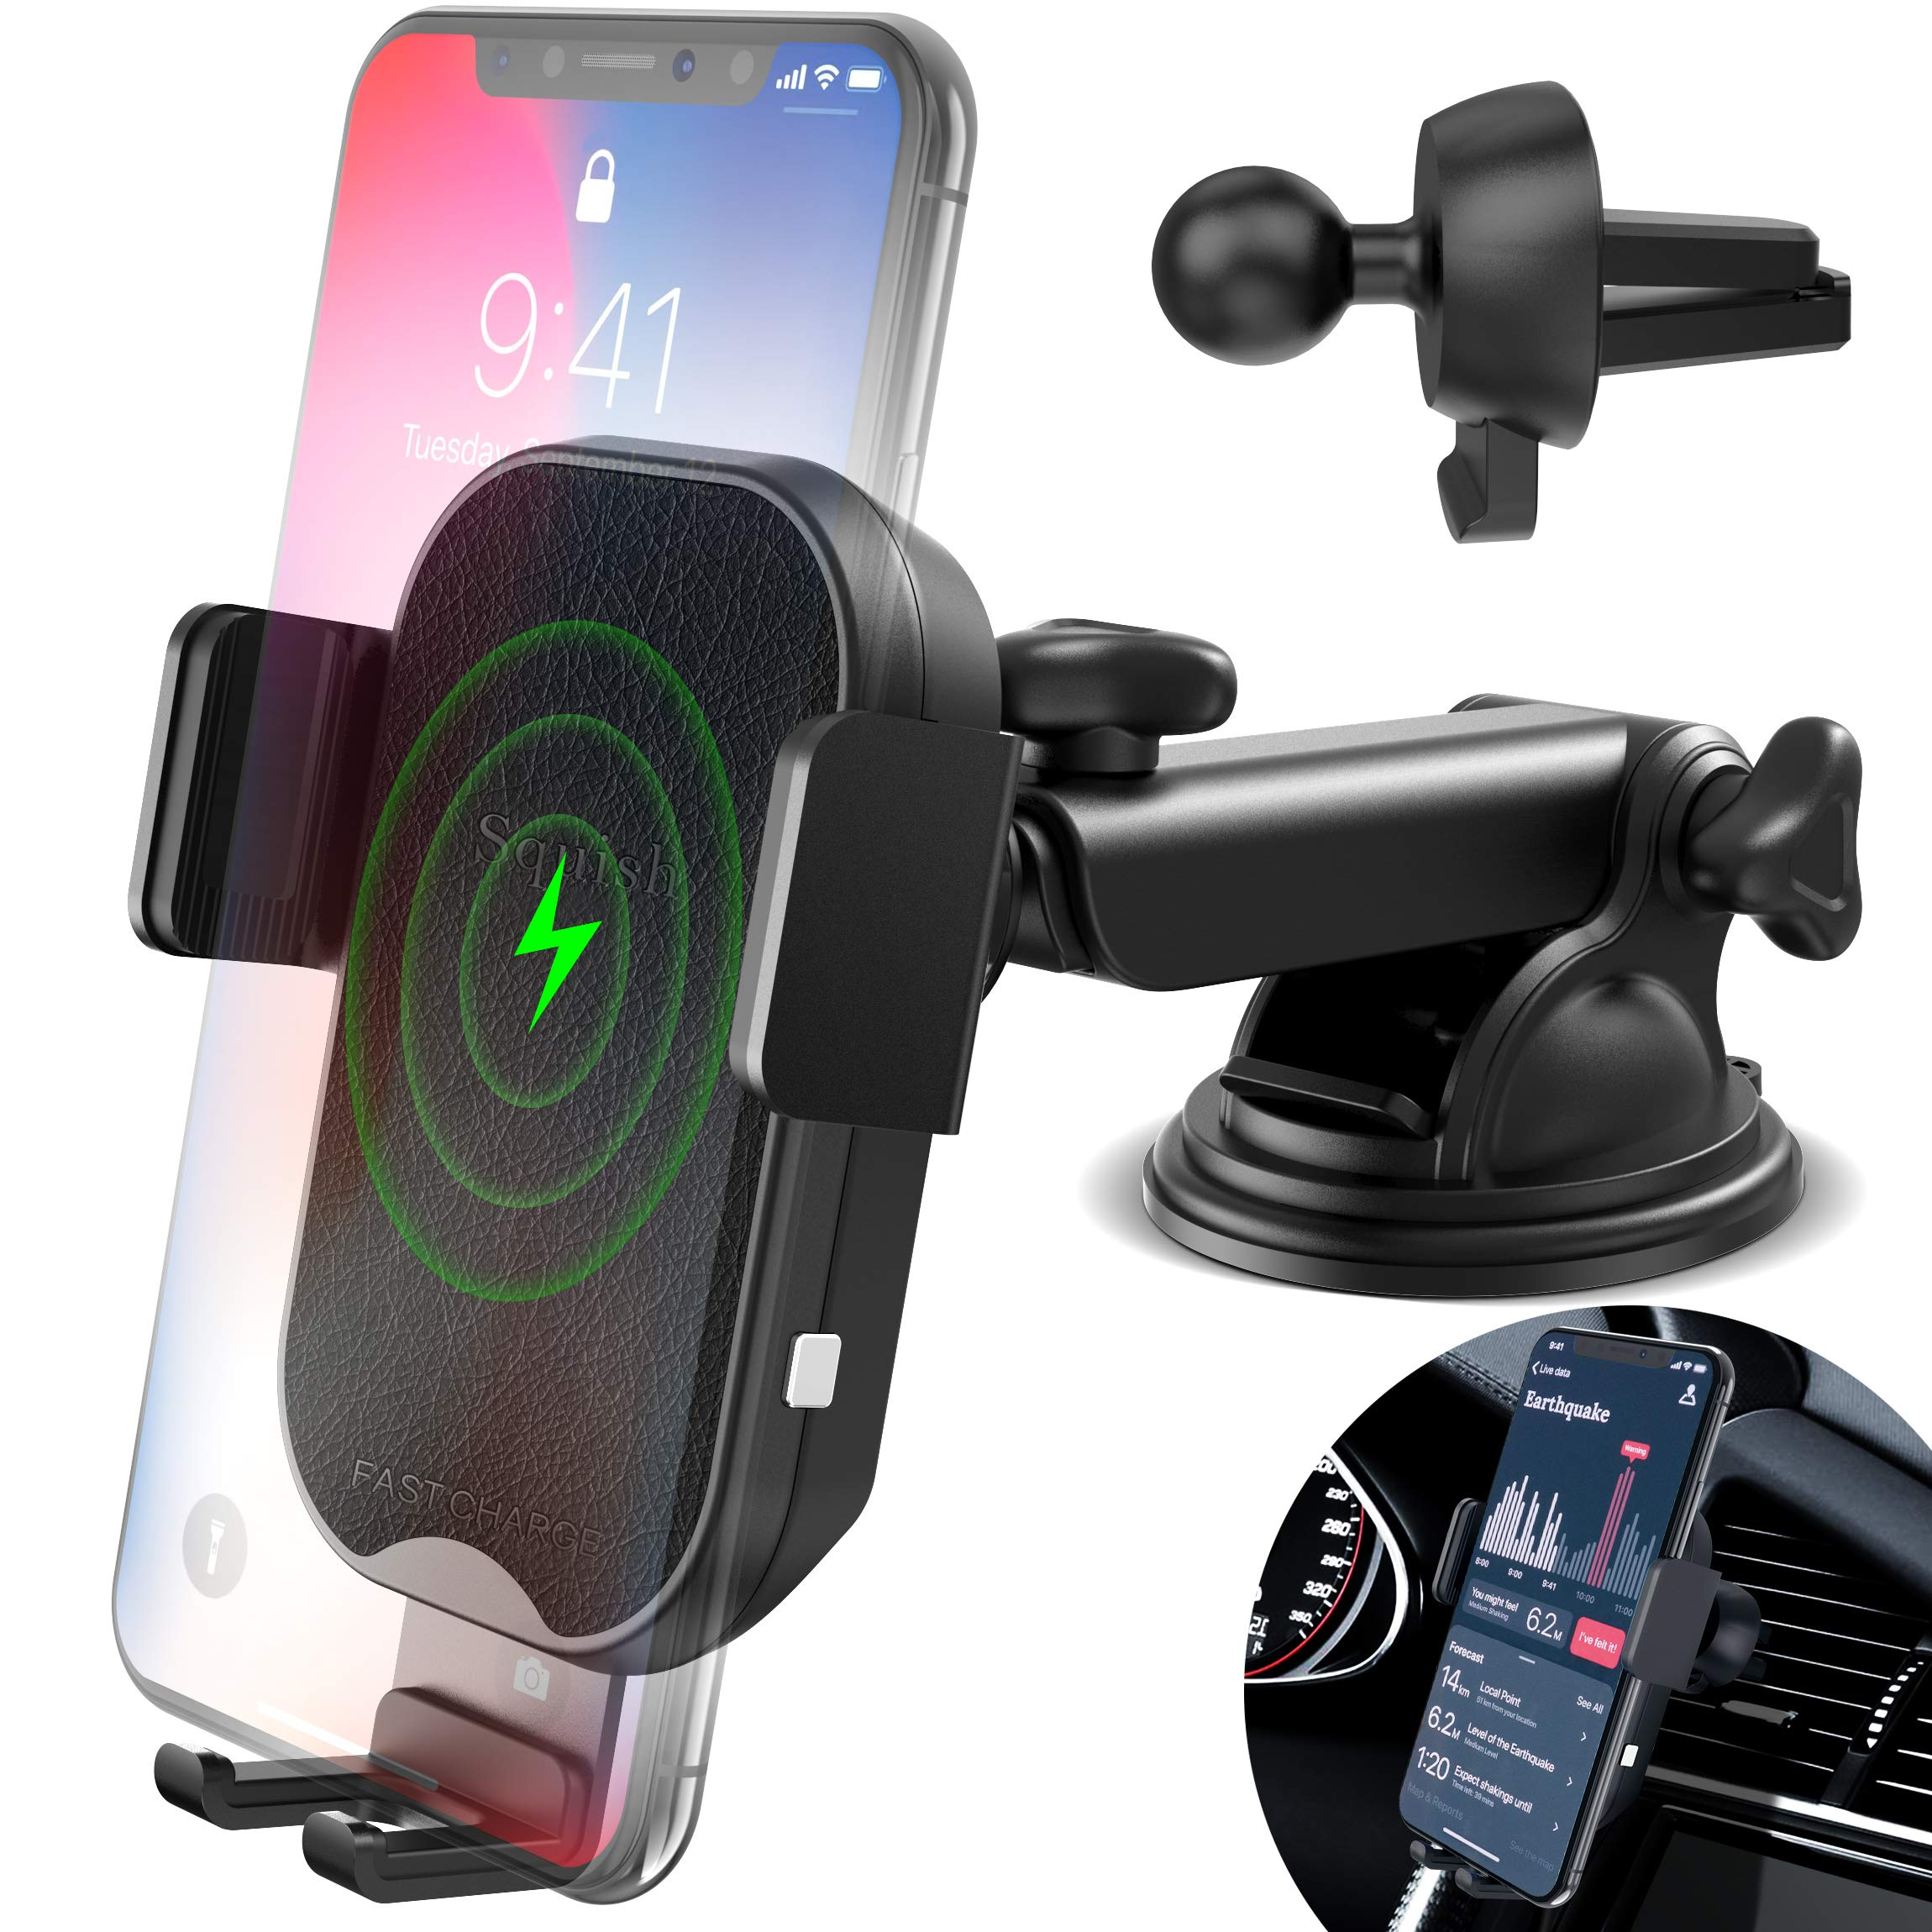 Wireless Charger Car Phone Mount, Squish Fast Charging Qi Wireless Car Charger, Auto Clamping Car Phone Holder for Air Vent Dashboard for iPhone Xs Max/XS/XR/X/8Plus/8 and Samsung S10 S9 S8 Note 9 8 7